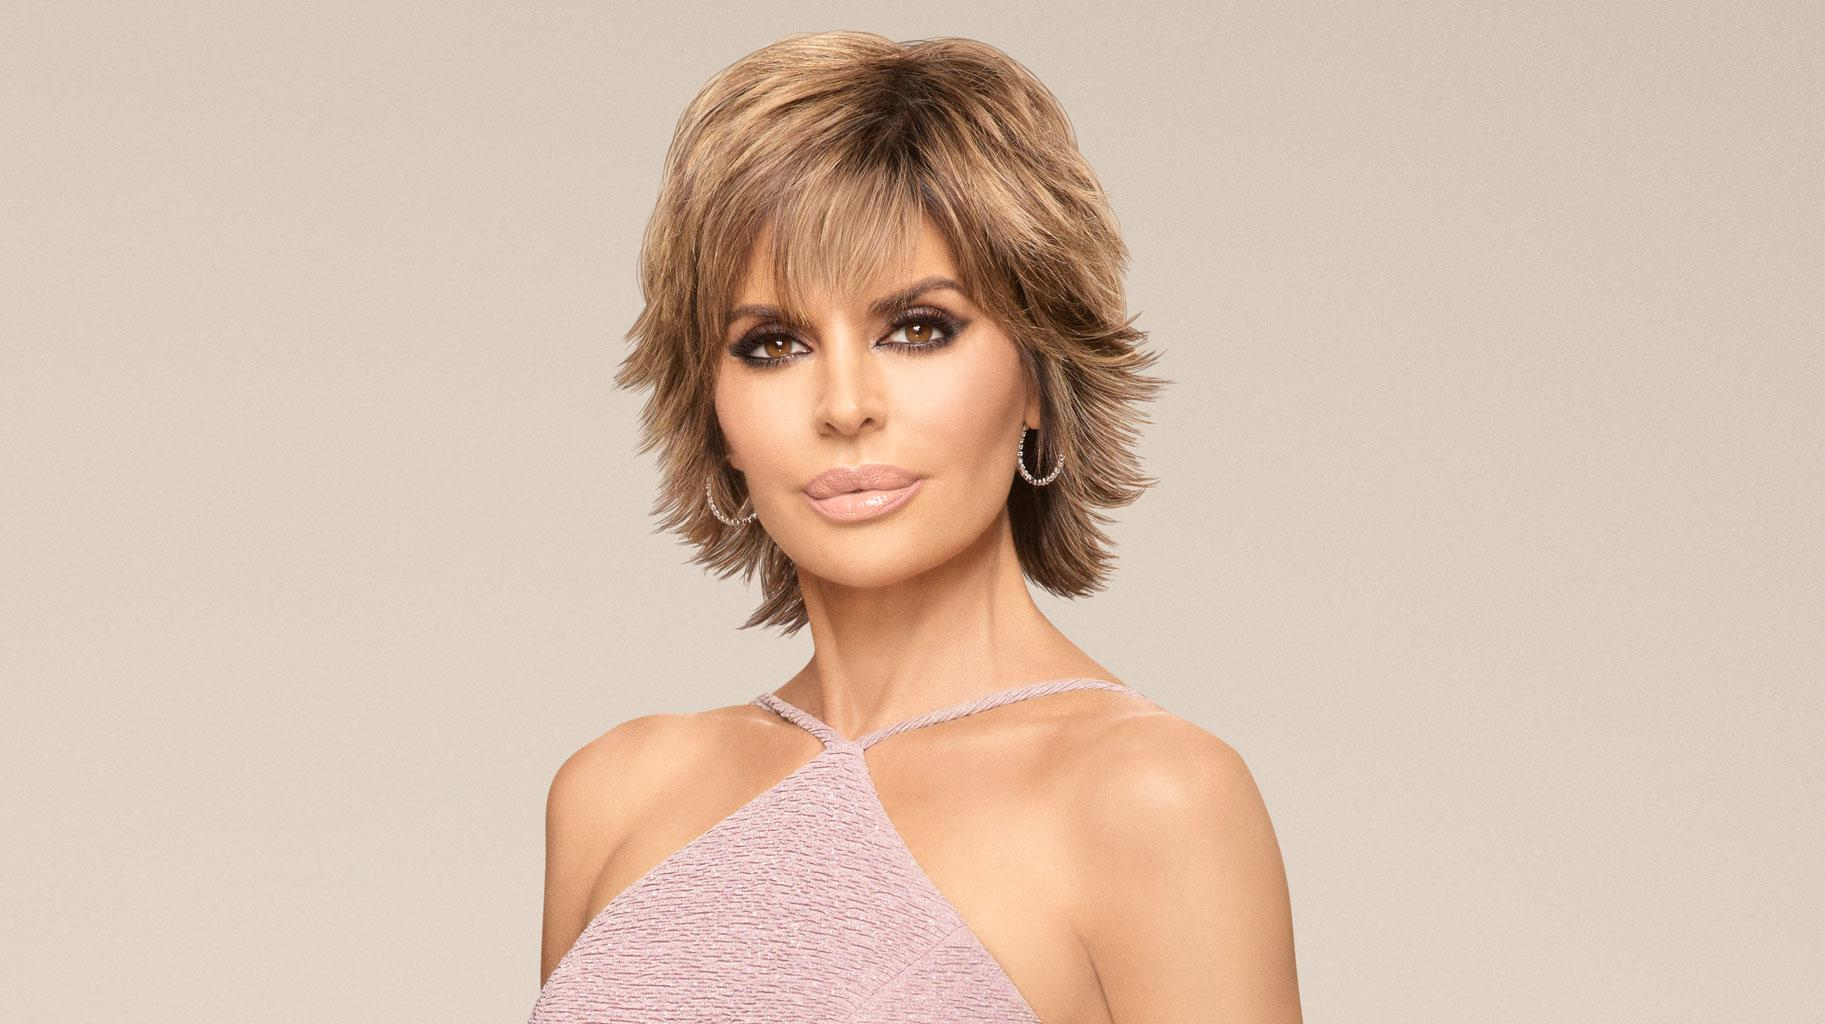 Lisa Rinna Has Epic Response To The Trolls Hating On Her Bathing Suit Dancing Video!